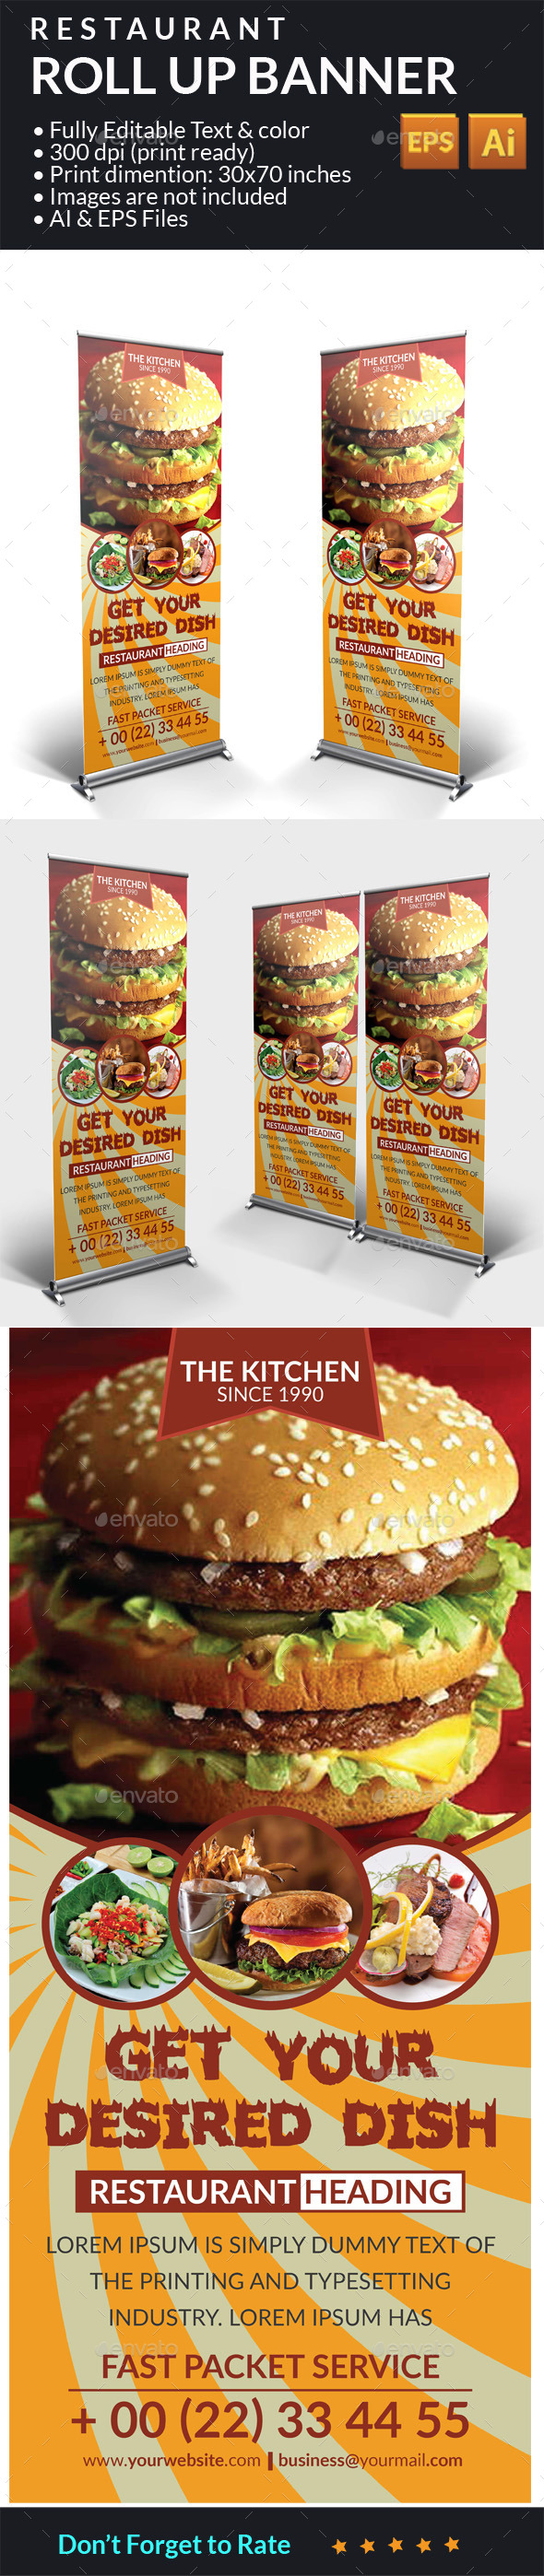 Restaurant Food Roll Up Banner